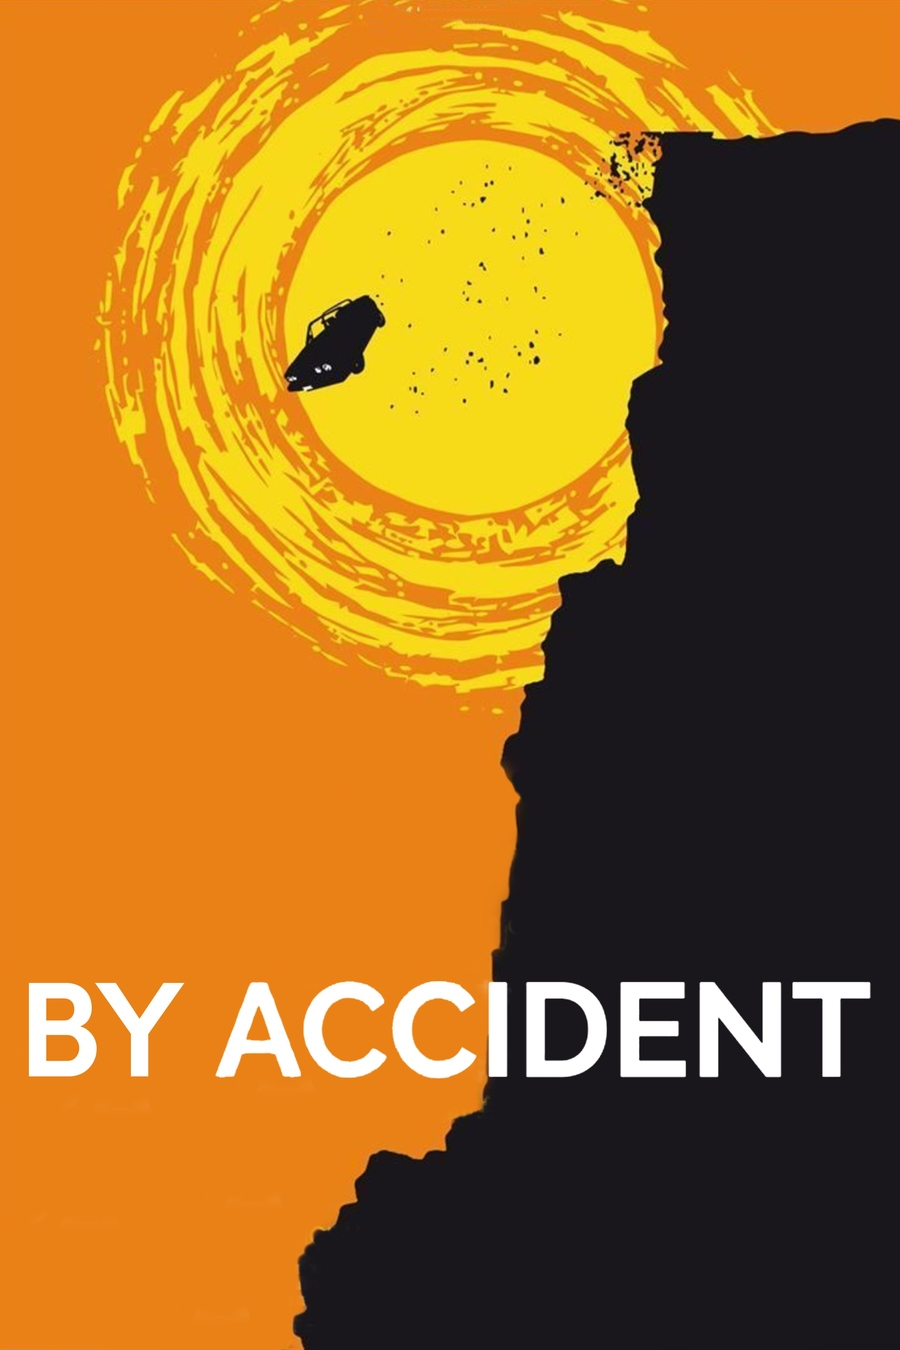 By Accident